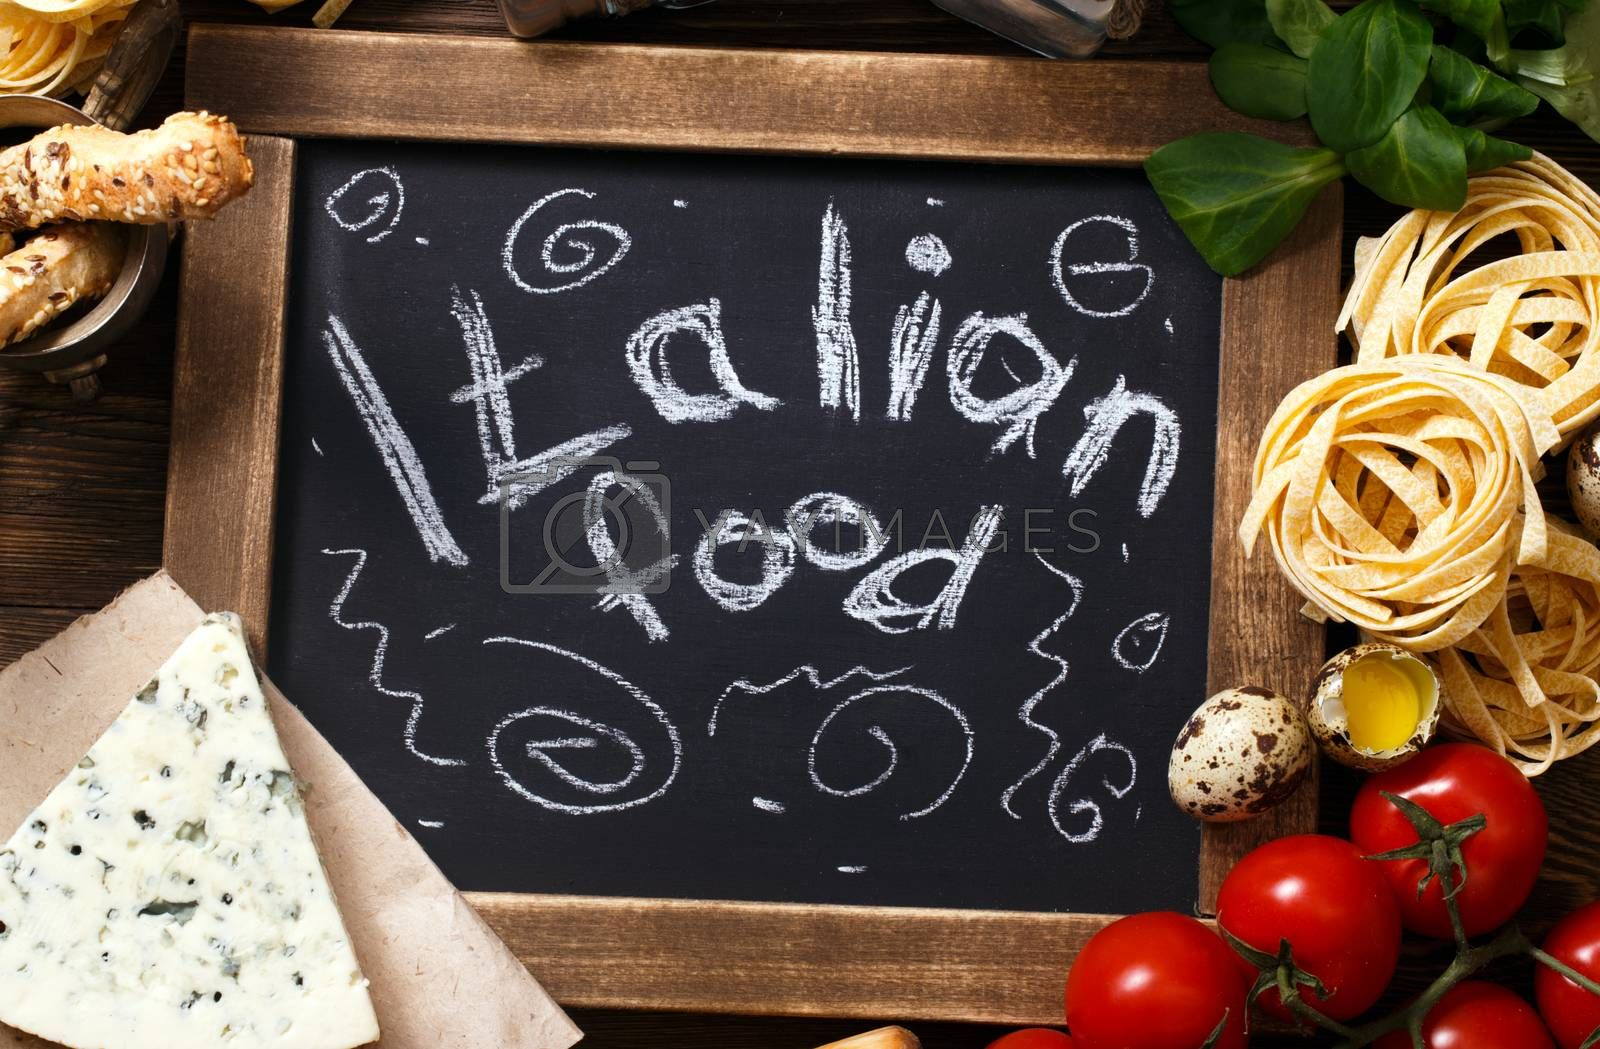 Royalty free image of Italian food on vintage wood background with chalkboard by primopiano